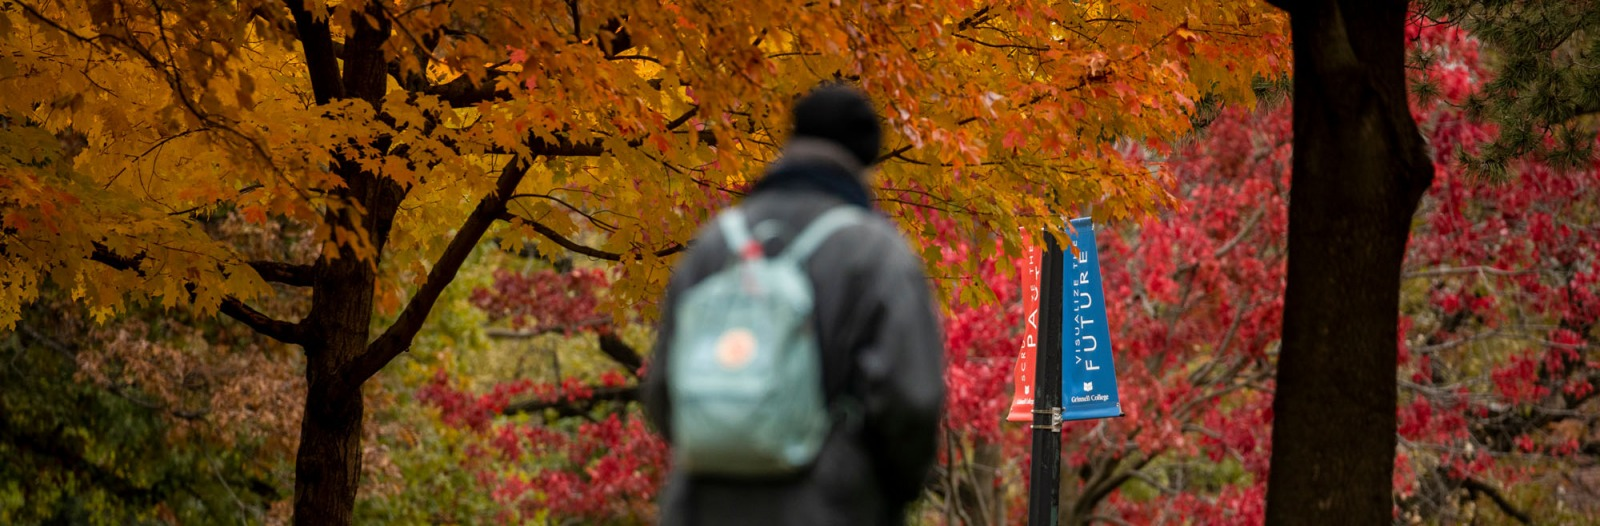 Students walk on campus with colorful fall leaves